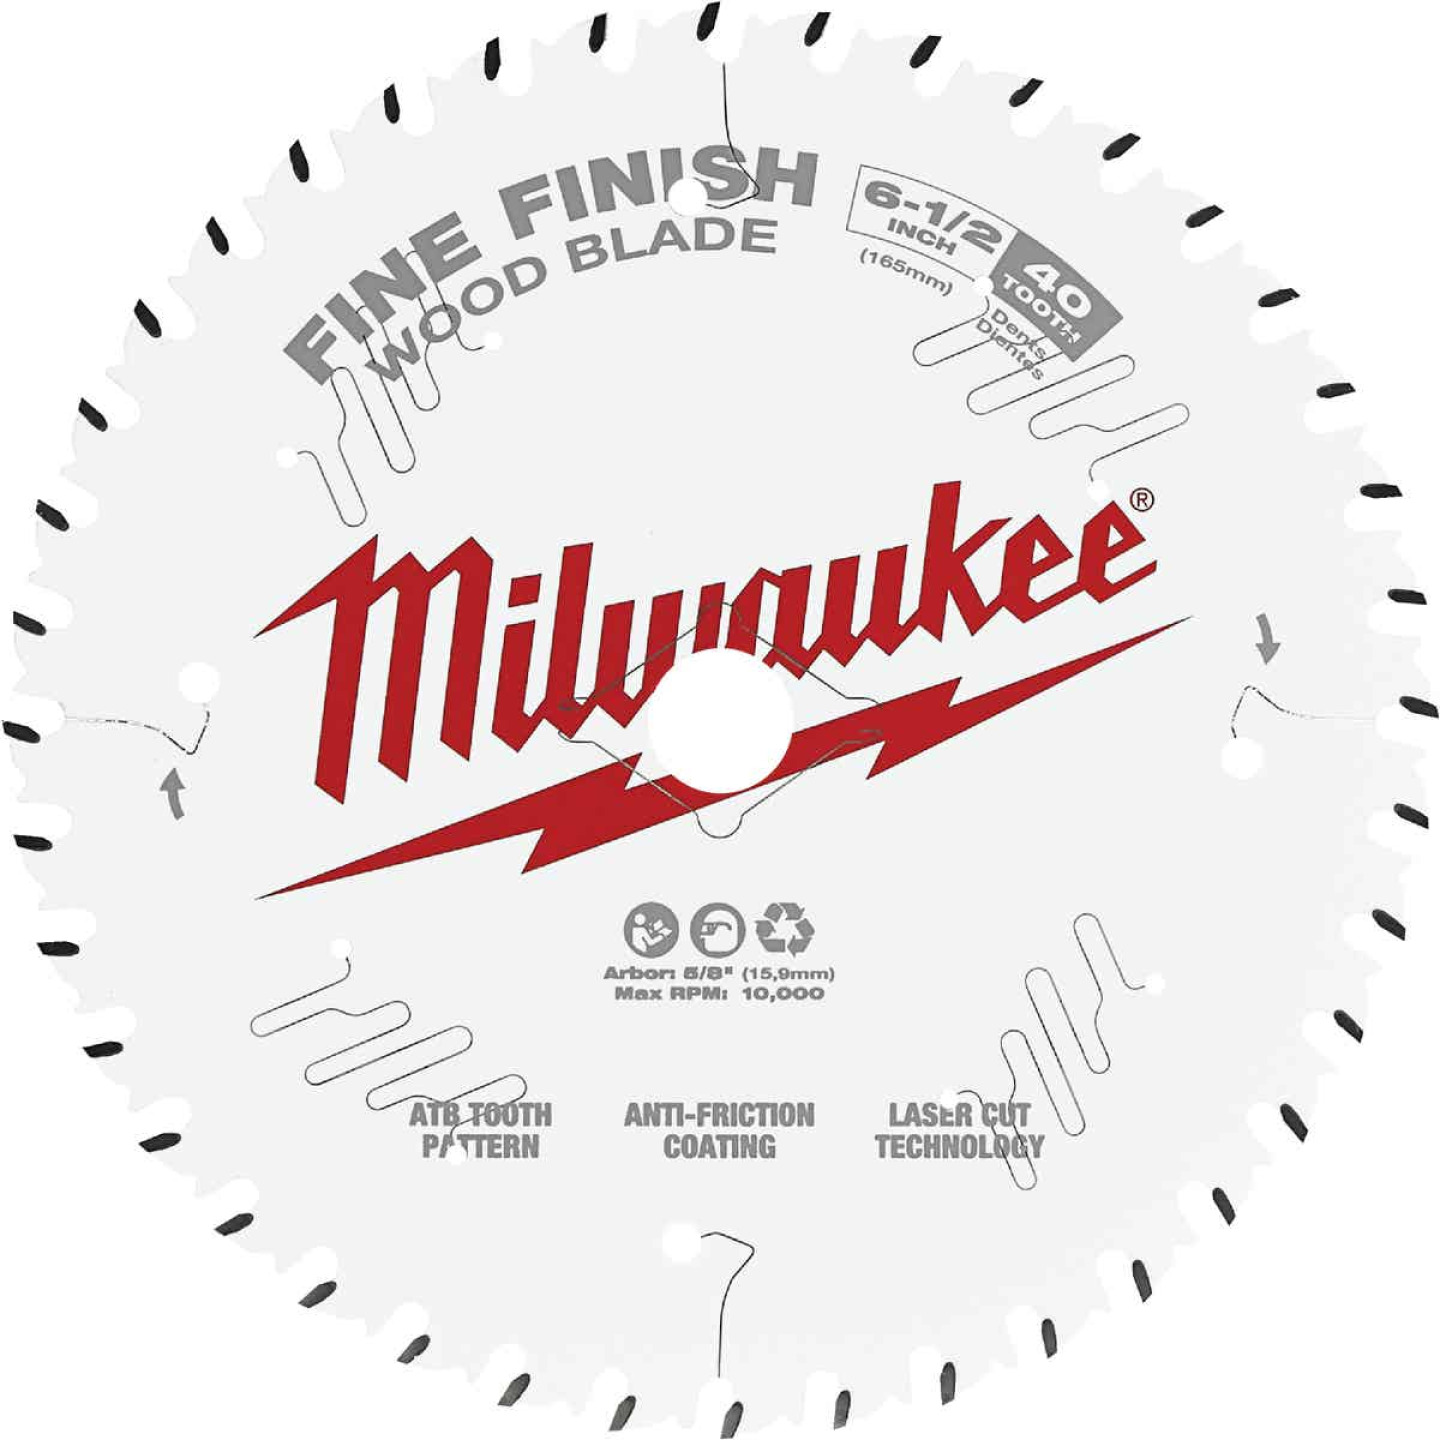 Milwaukee 6-1/2 In. 40-Tooth Fine Finish Circular Saw Blade Image 1